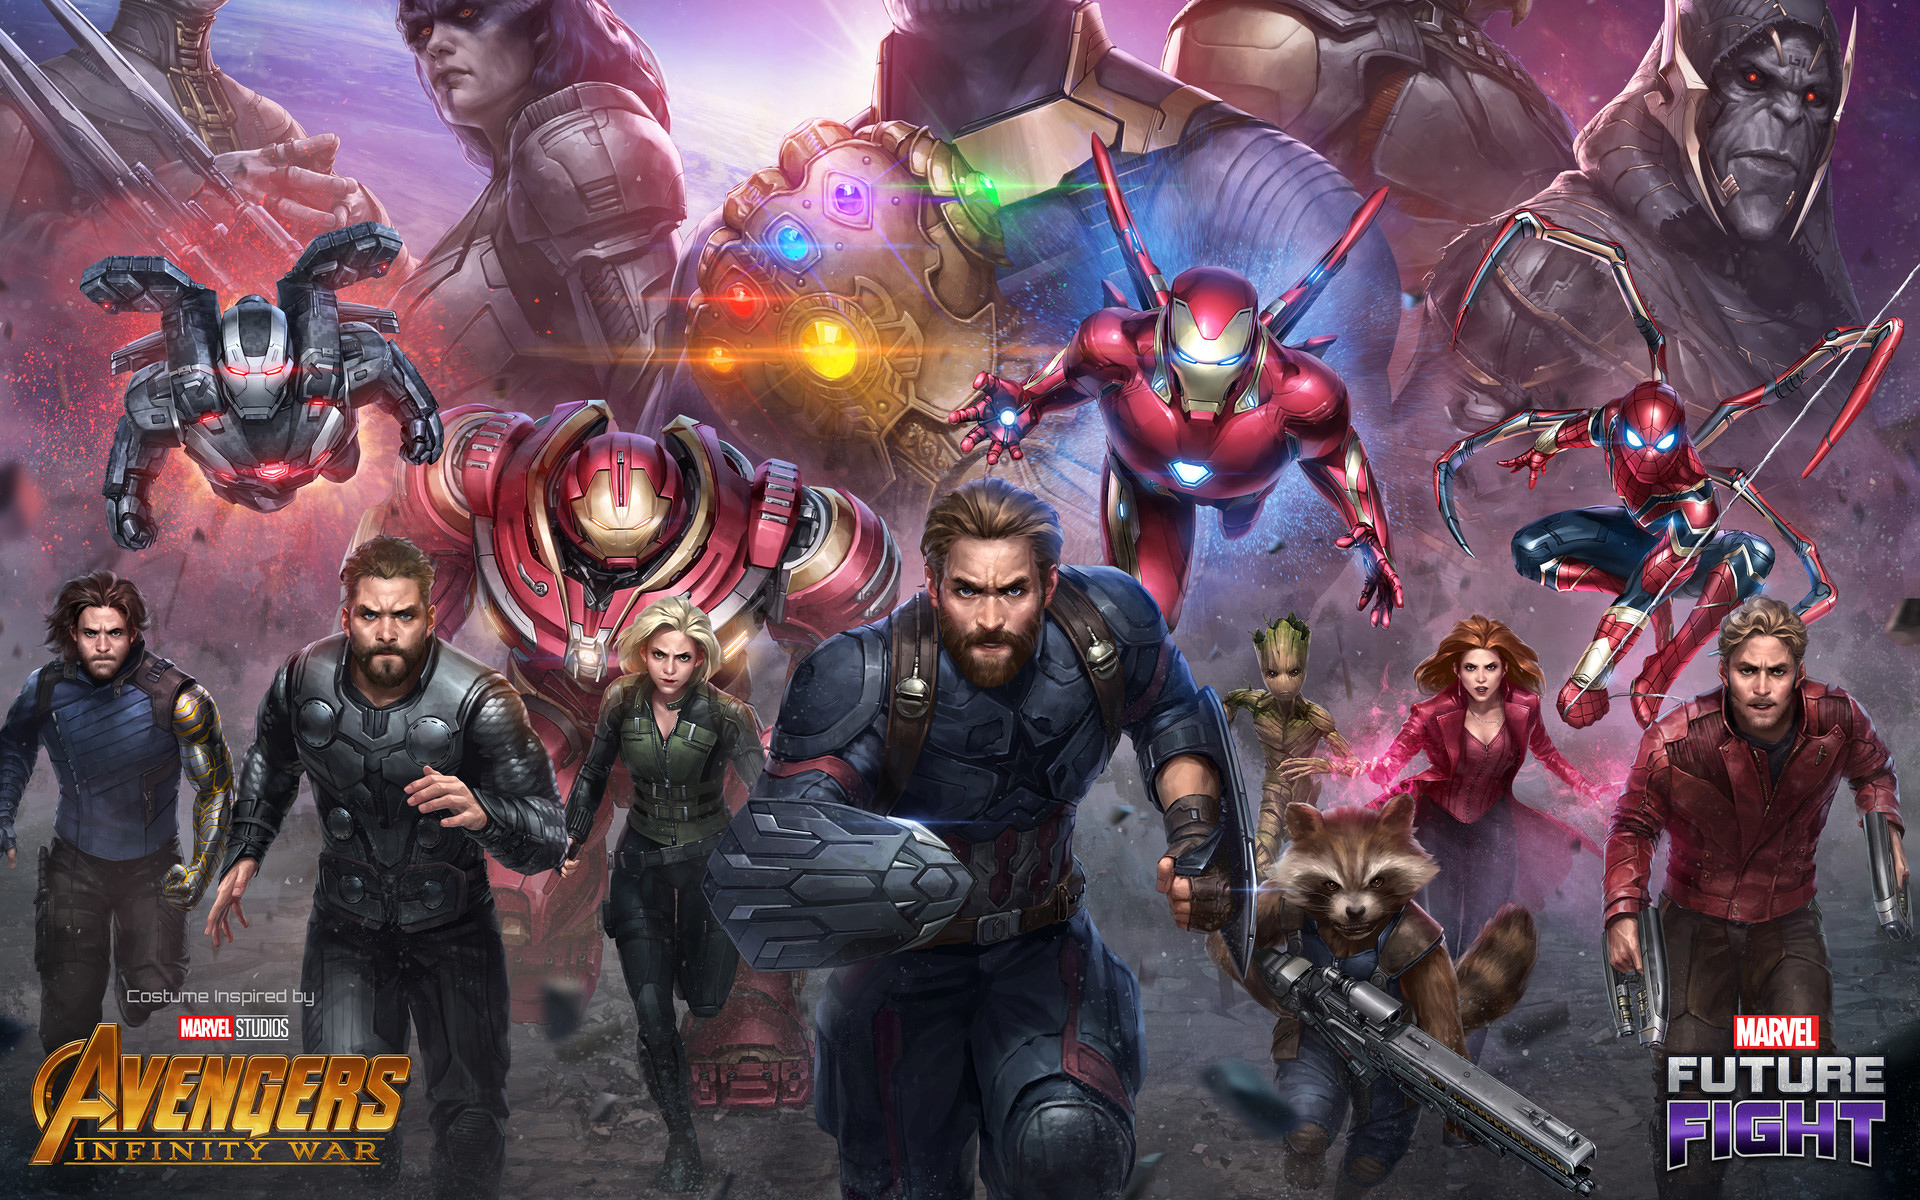 Avengers Infinity War Superheroes Wallpapers. Avengers Infinity War Superheroes Wallpapers. ««